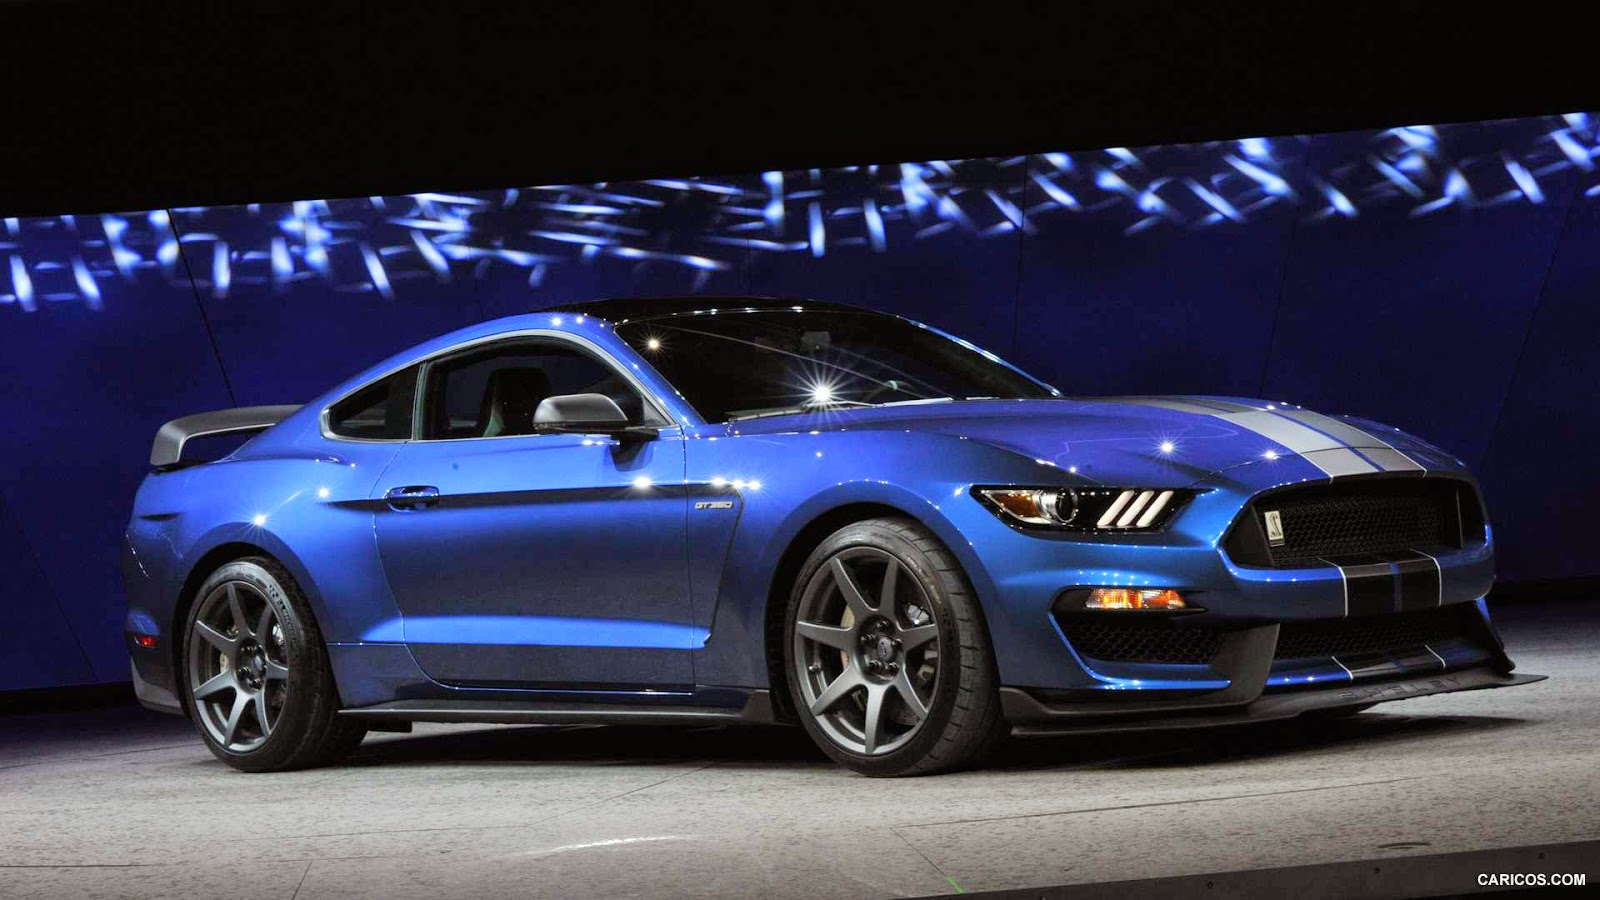 2016 ford mustang shelby gt350 car review and modification. Black Bedroom Furniture Sets. Home Design Ideas